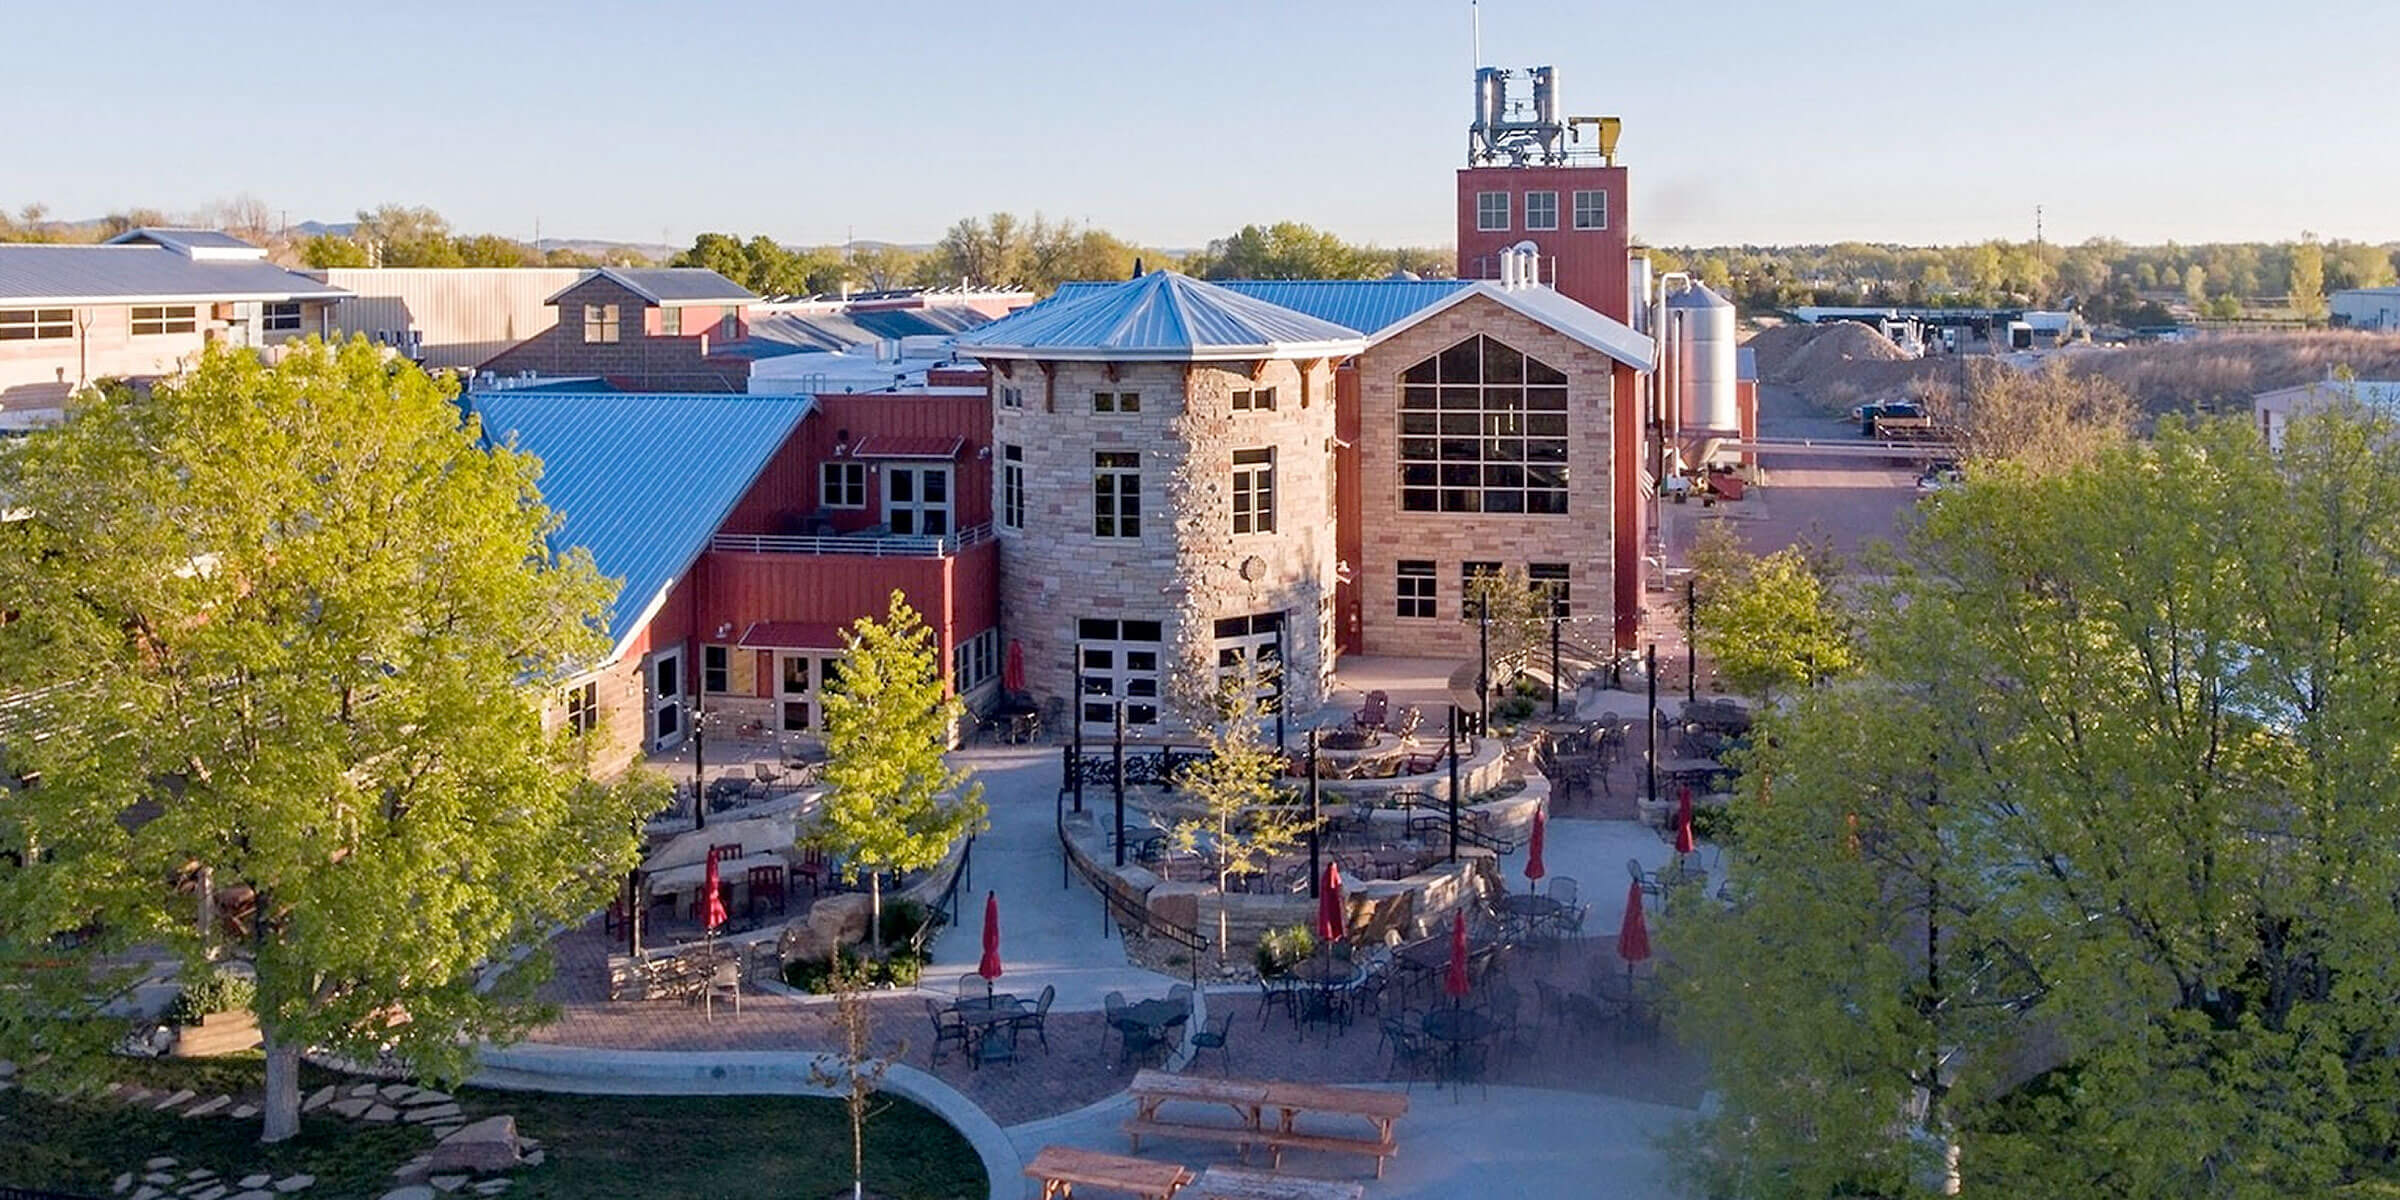 Outside the Fort Collins Brewery of Odell Brewing Co. in Fort Collins, Colorado